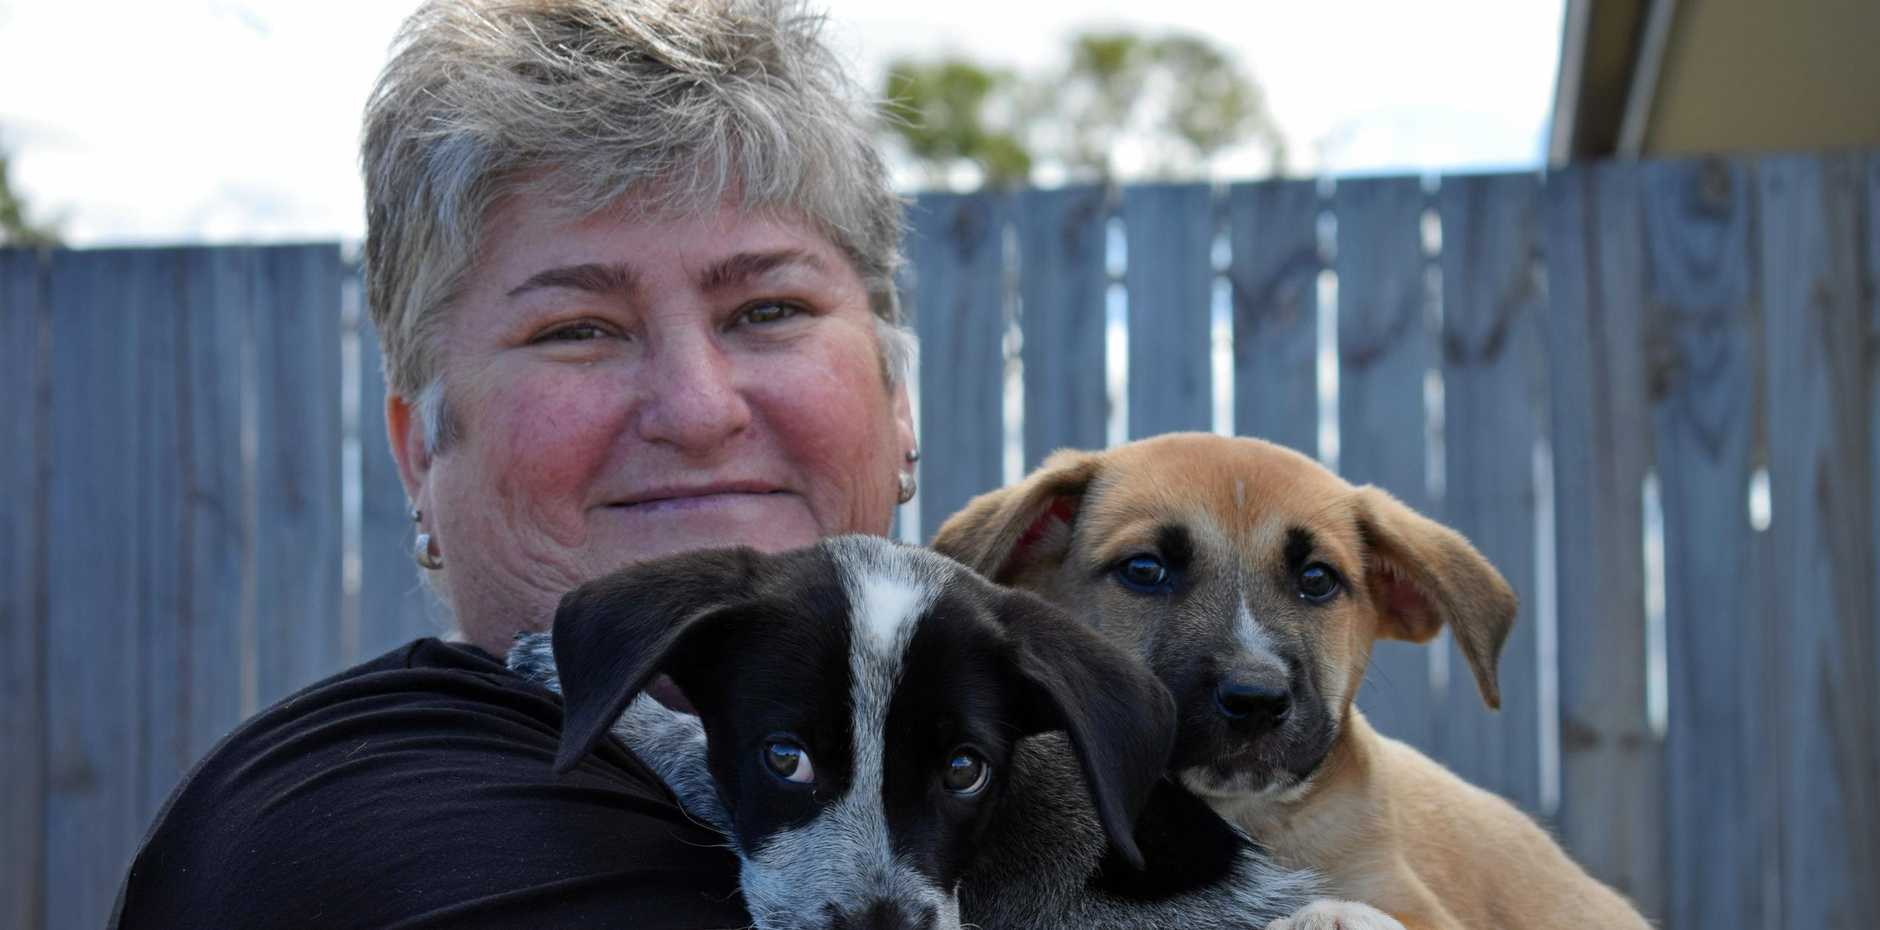 IRRESISTIBLE: Gladstone Animal Rescue's Karen Uridge with foster dogs Bandit and Bear. The group is in urgent need of dog foster carers.